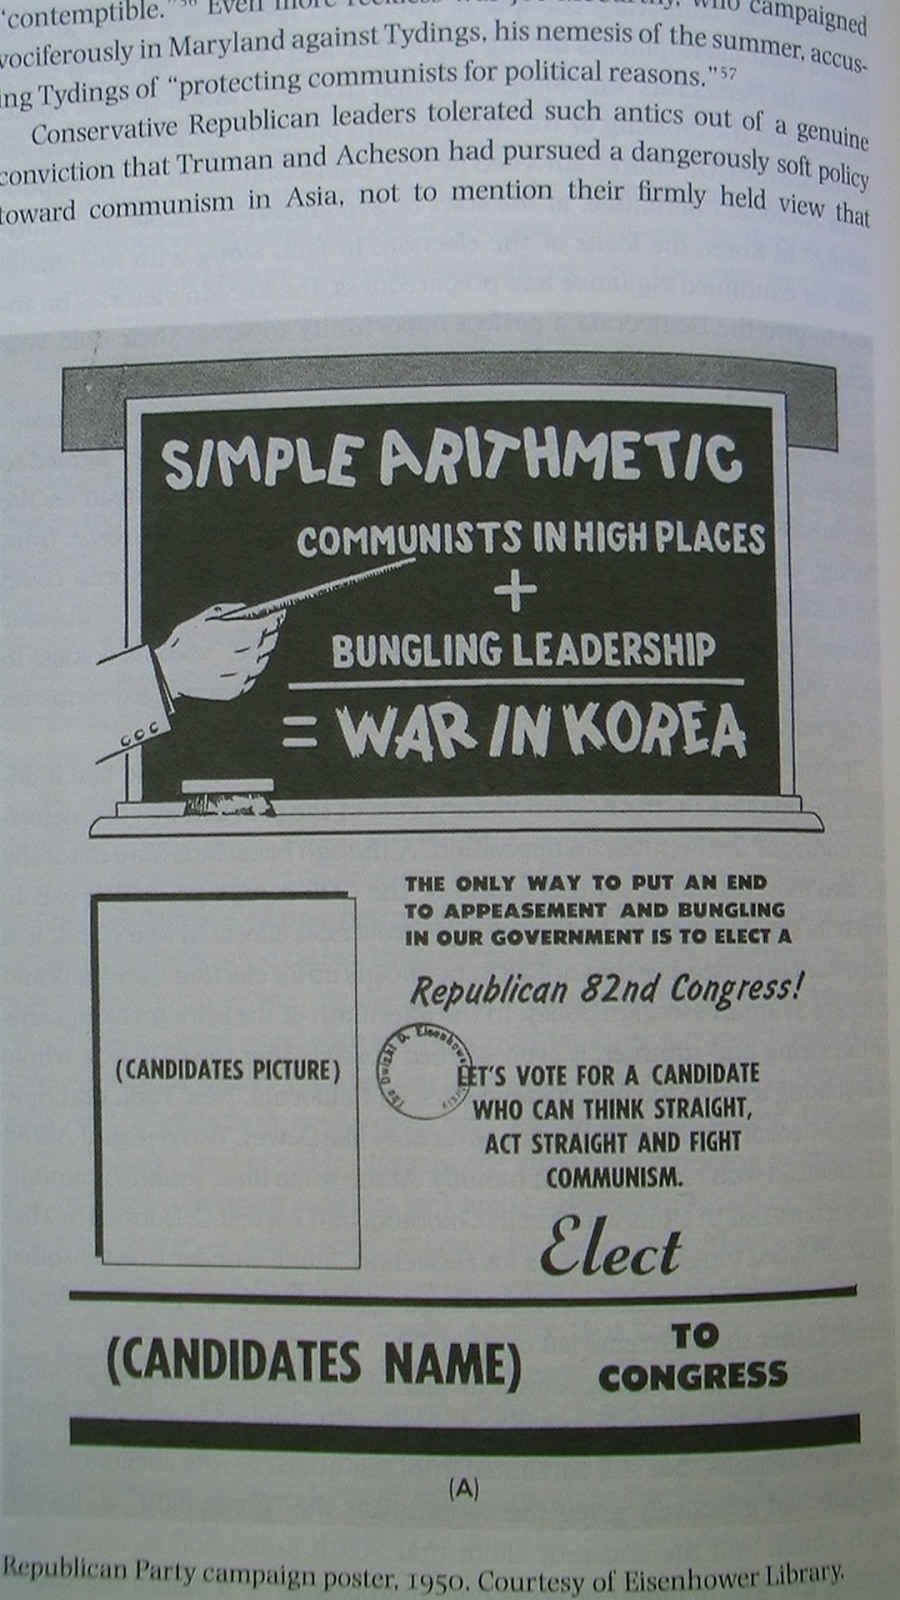 Republican Leaflet from Eisenhower Library, reprinted in Casey, Steven.  Selling the Korean War: Propaganda, Politics, and Public Opinion in the United States, 1950-1953.  New York: Oxford University Press, 2008.